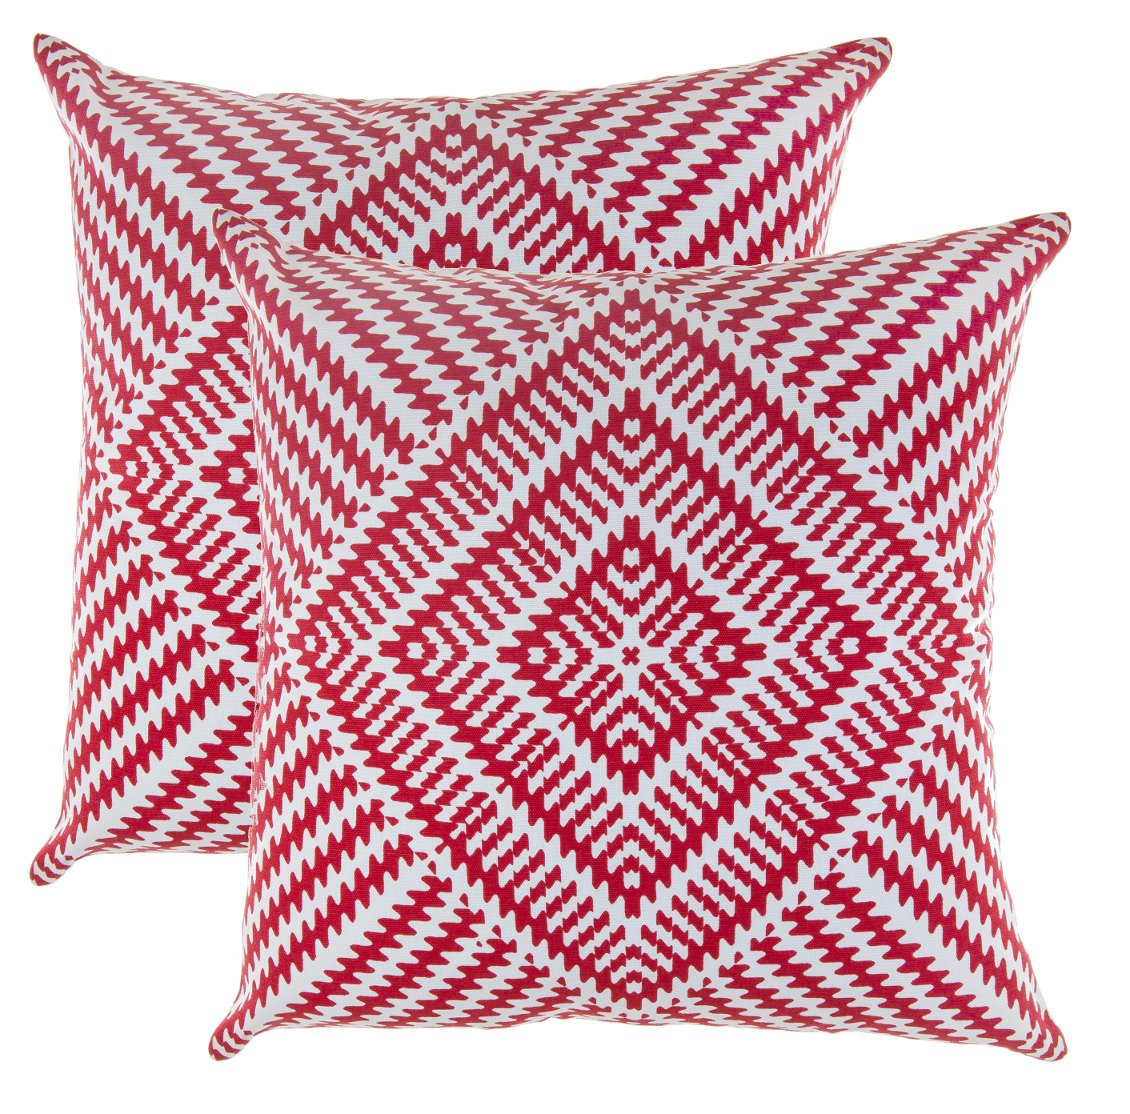 TreeWool, Pack of 2, Throw Pillow Cover Kaleidoscope Accent 100% Cotton Decorative Square Cushion Cases (22 x 22 Inches / 55 x 55 cm; Red & Off White)